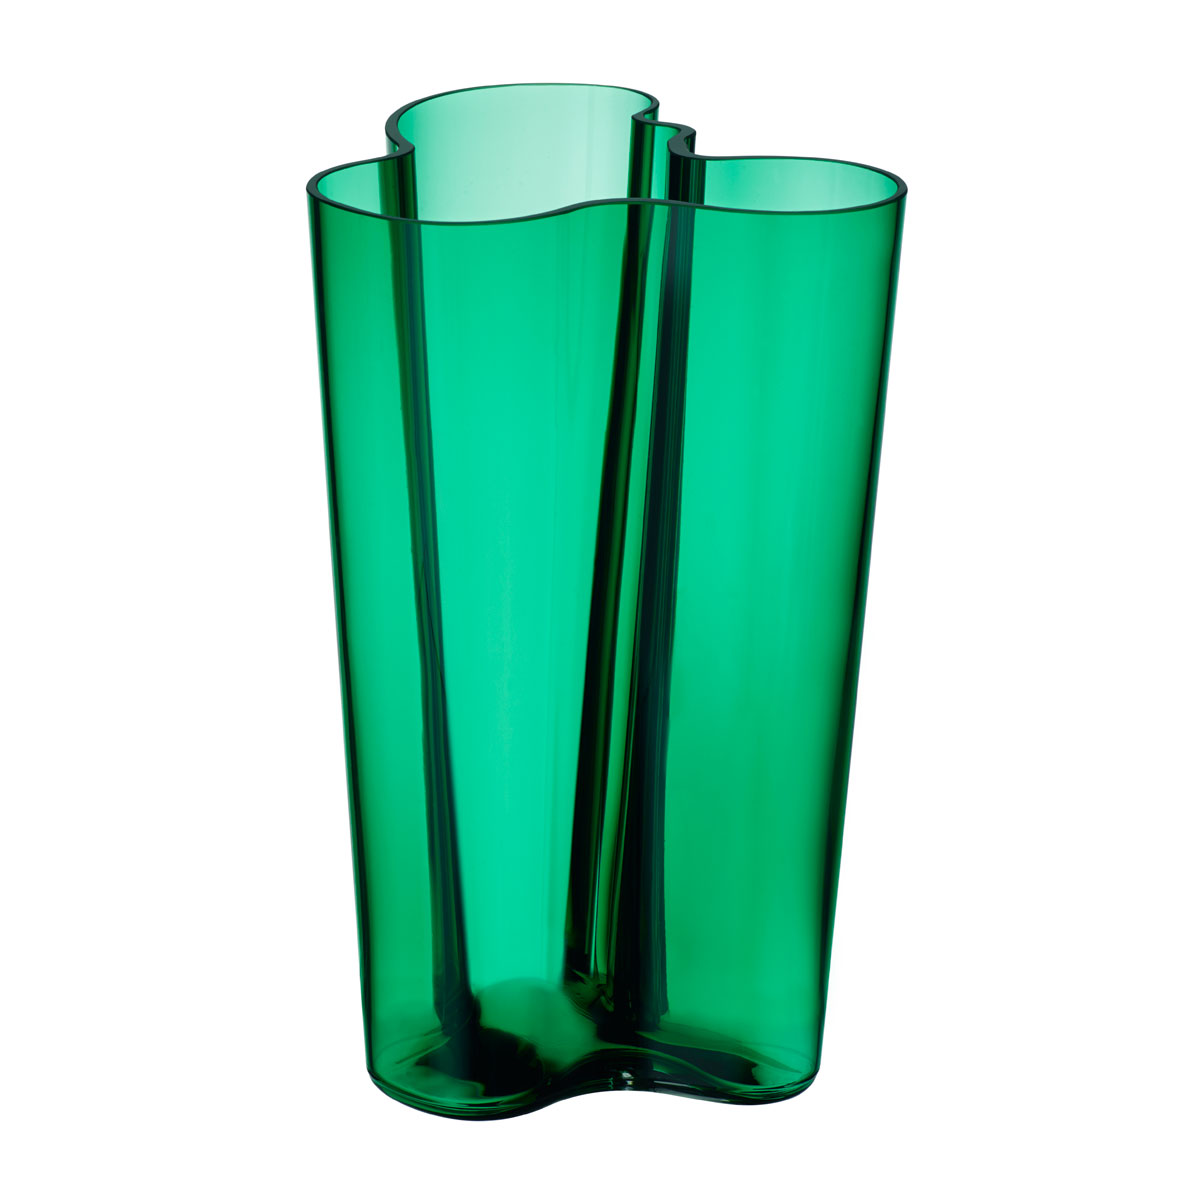 iittala aalto finlandia emerald vase 10 iittala alvar. Black Bedroom Furniture Sets. Home Design Ideas